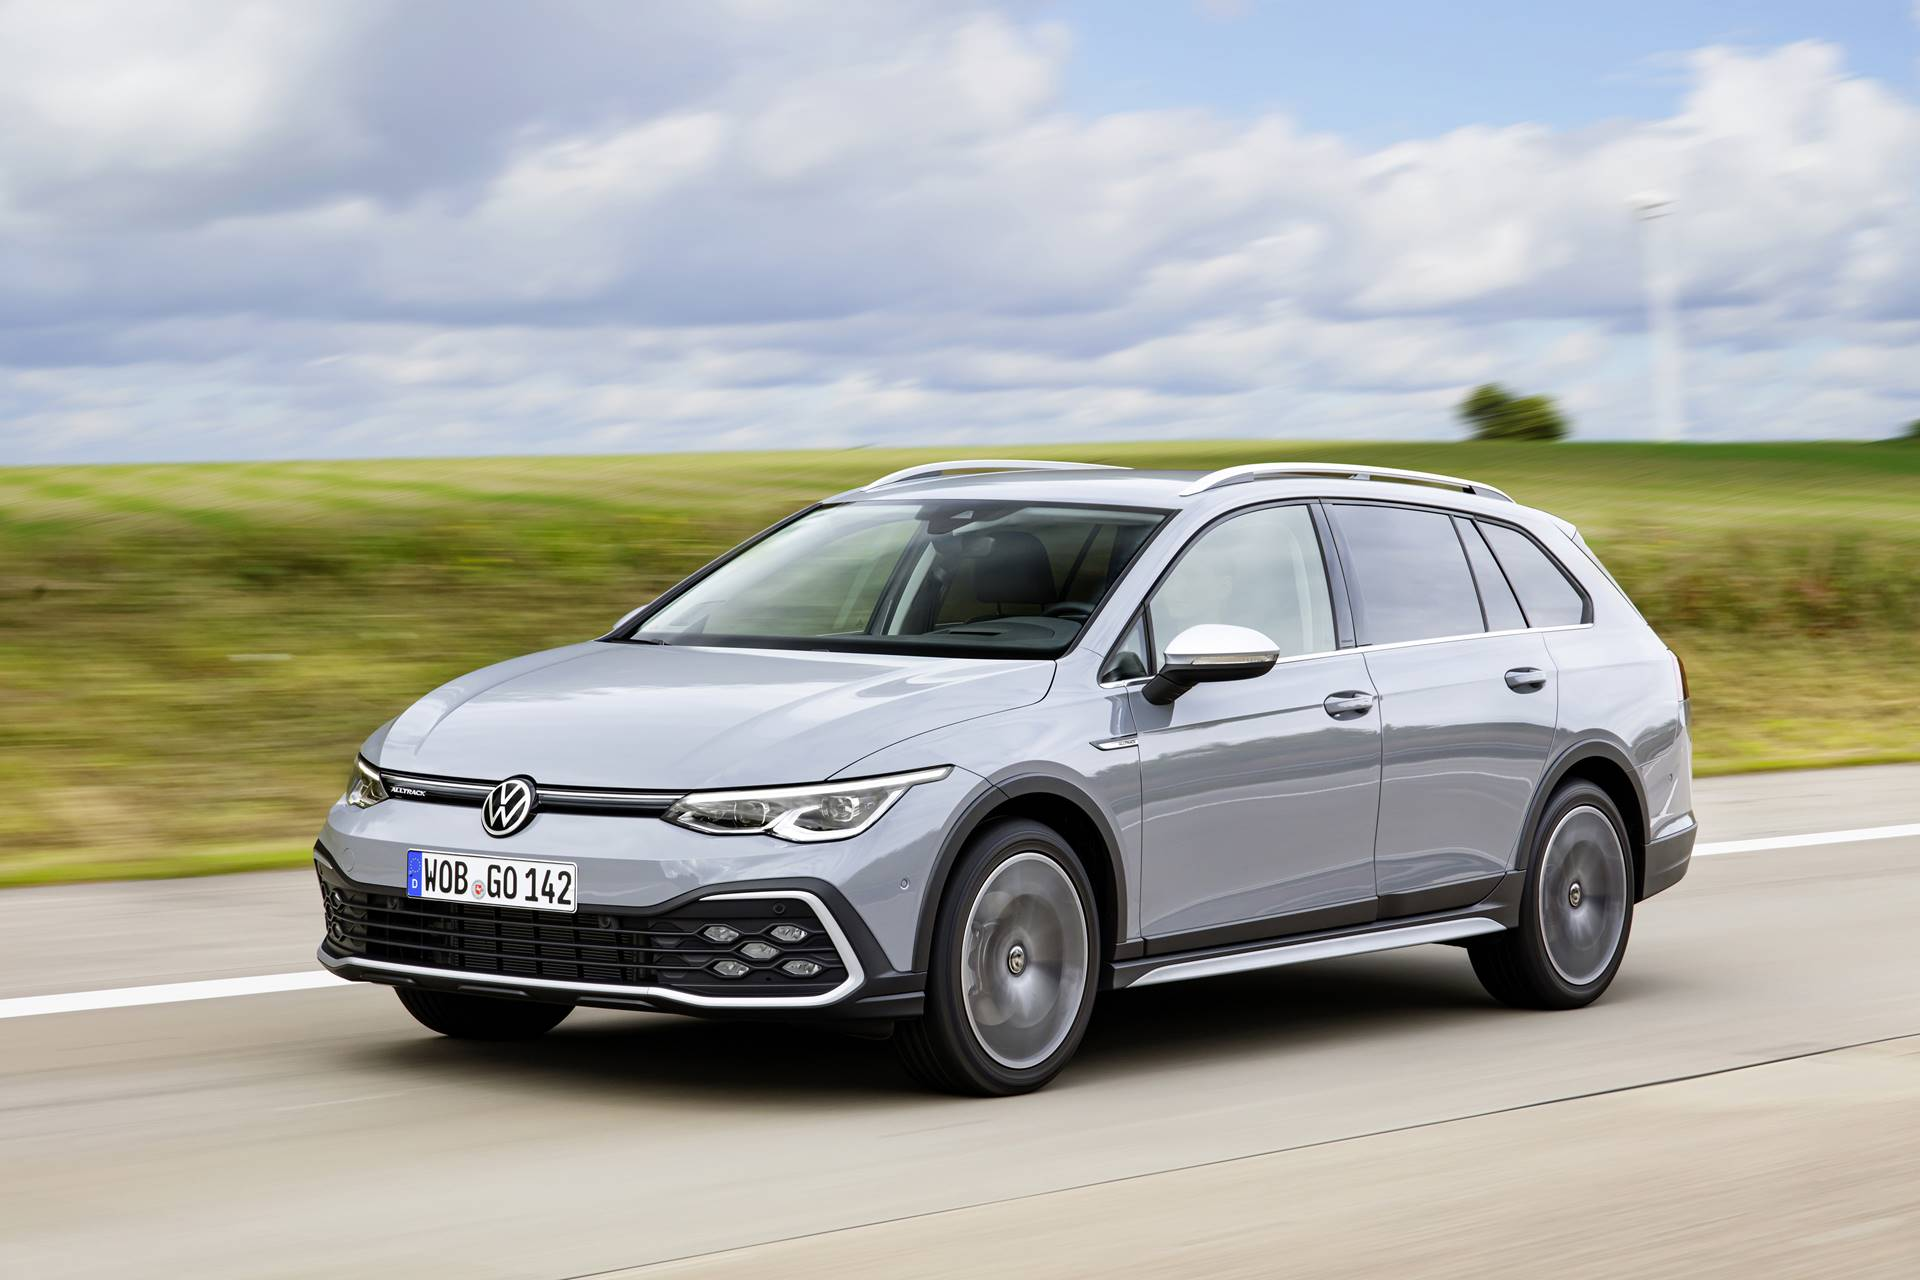 New Golf Estate Arrives In UK With More Space, Style And Standard-Fit Equipment Than Ever Before